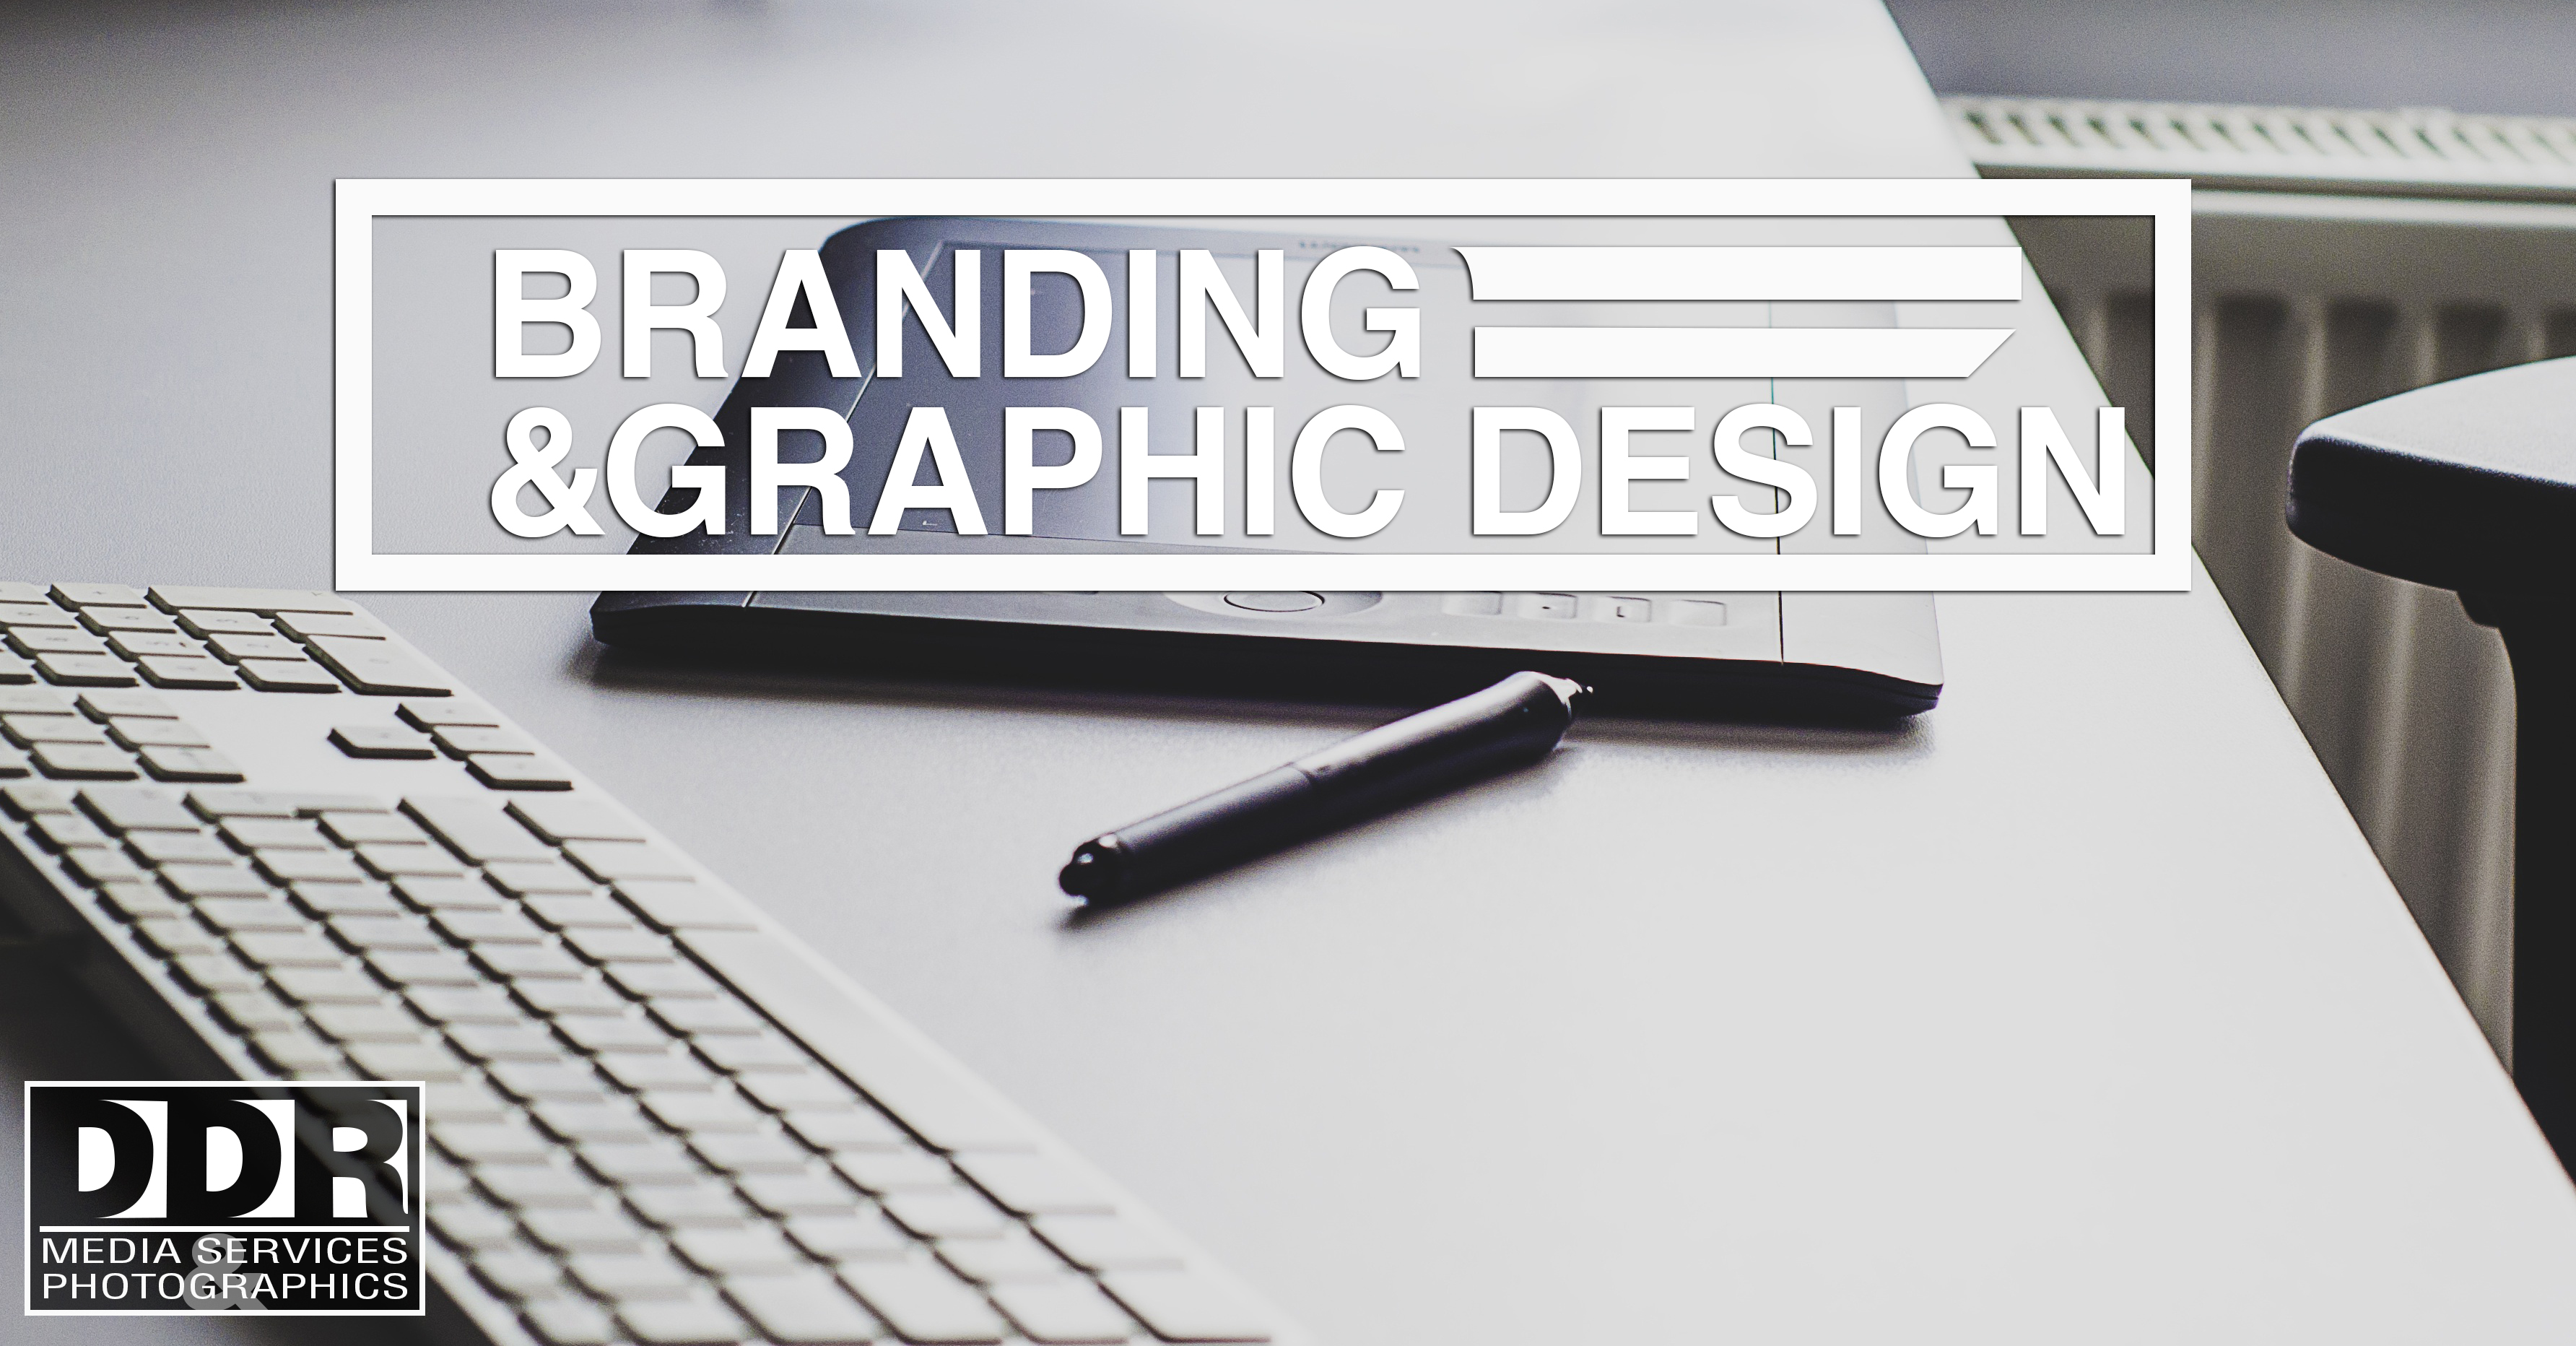 Branding and Graphic Design | DDR Media Services